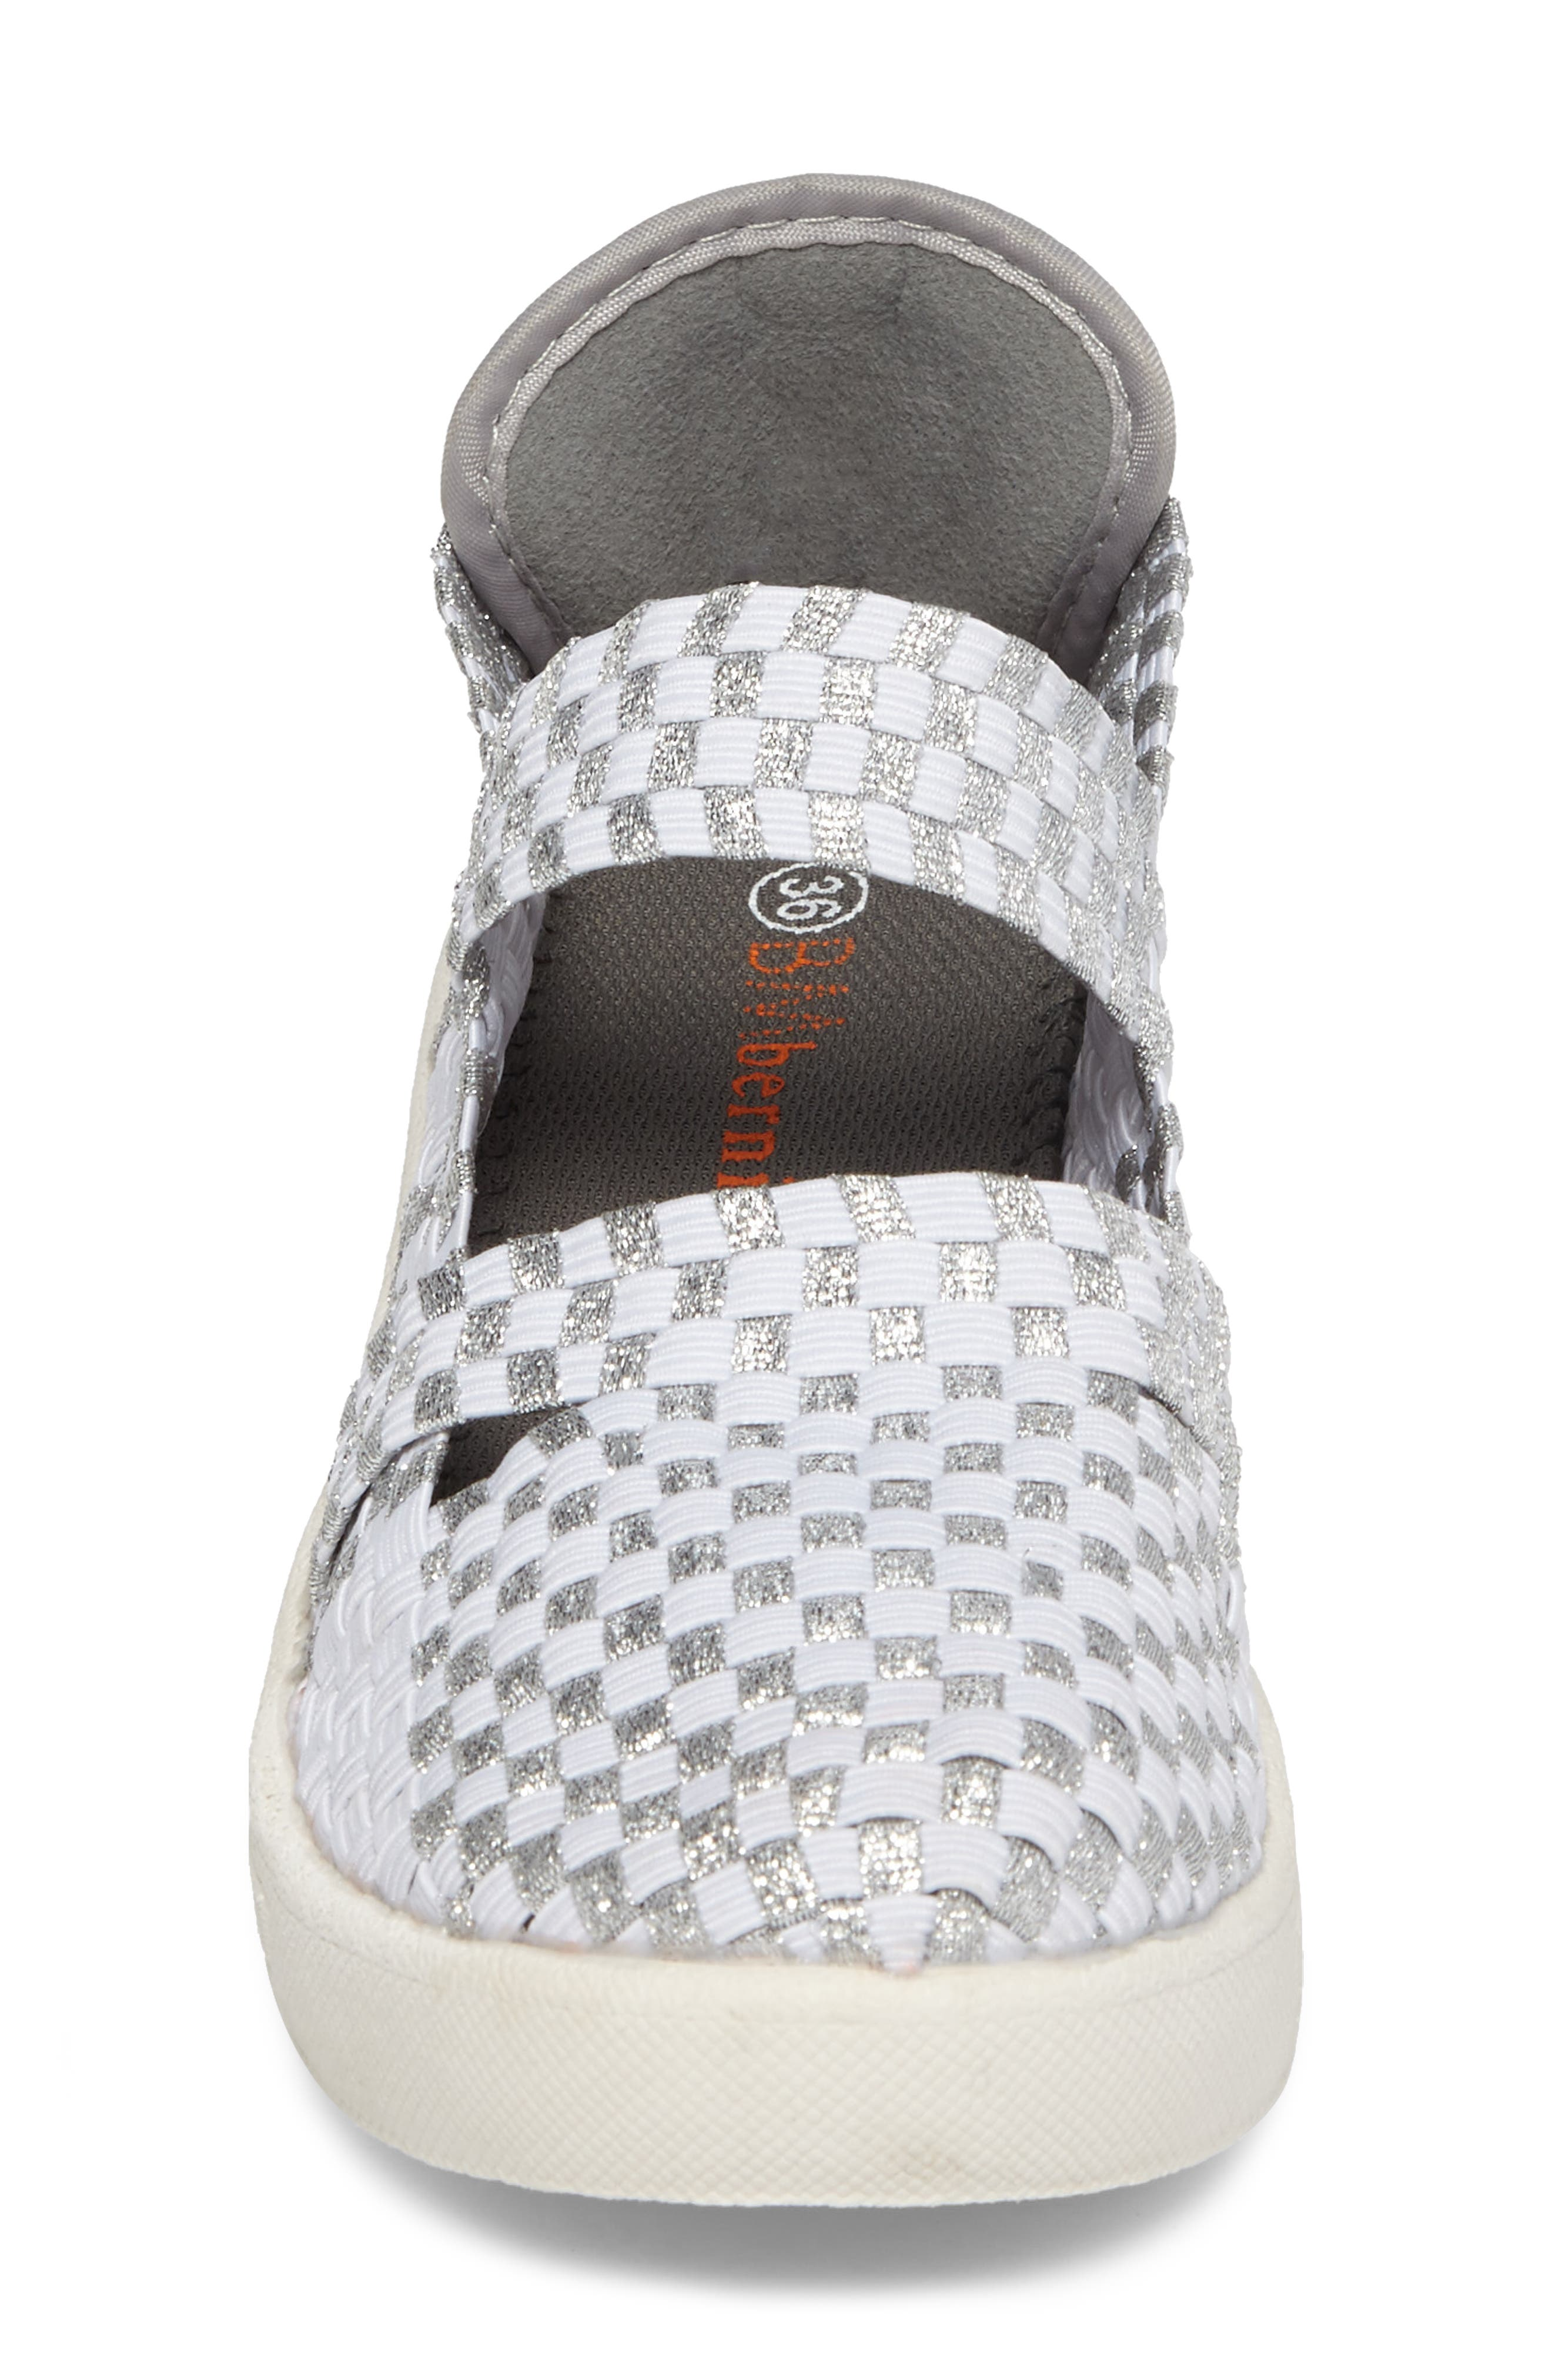 Frontier Woven Mary Jane Wedge,                             Alternate thumbnail 4, color,                             Metallic White/ Silver Fabric